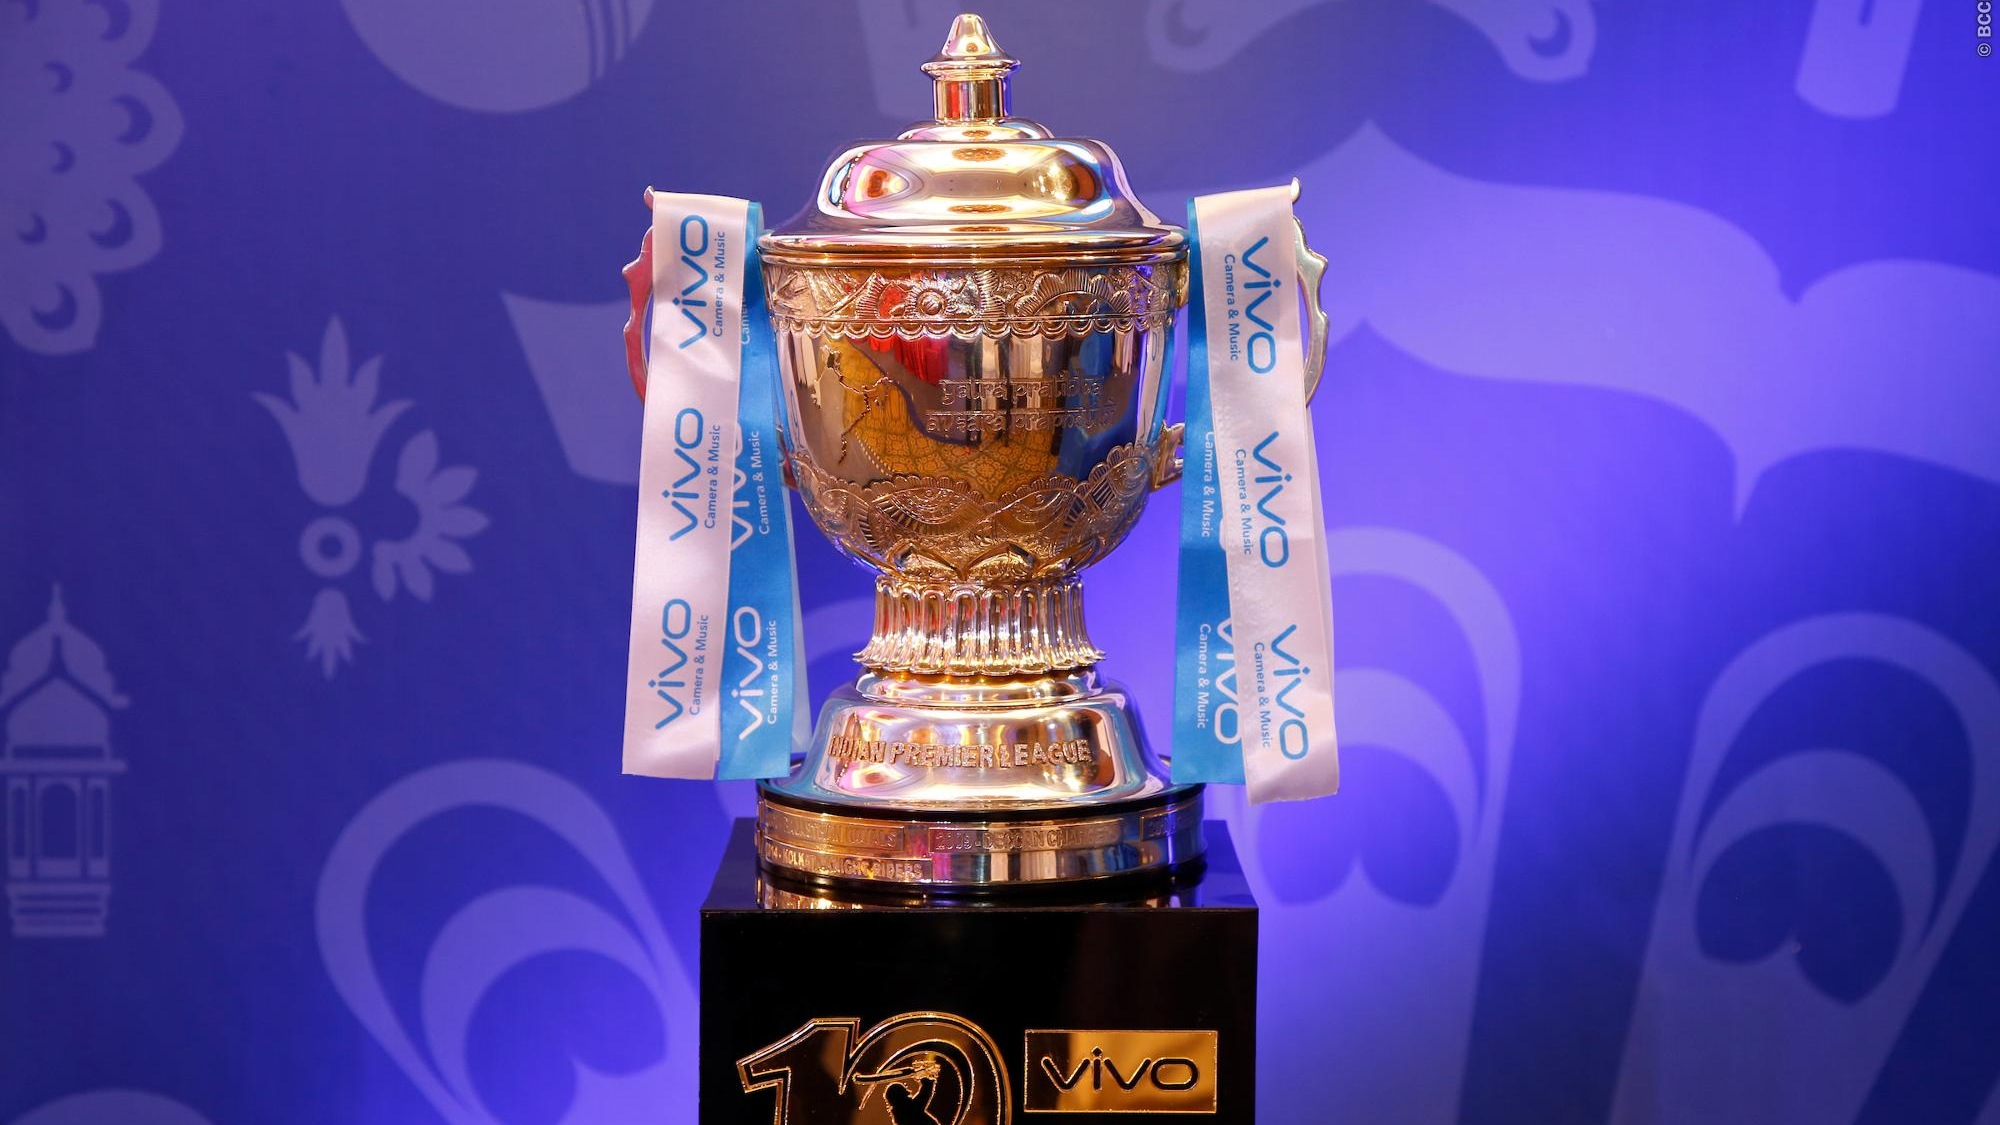 IPL 2018: Timings of playoffs and final game changed to 7 pm for convenience of spectators